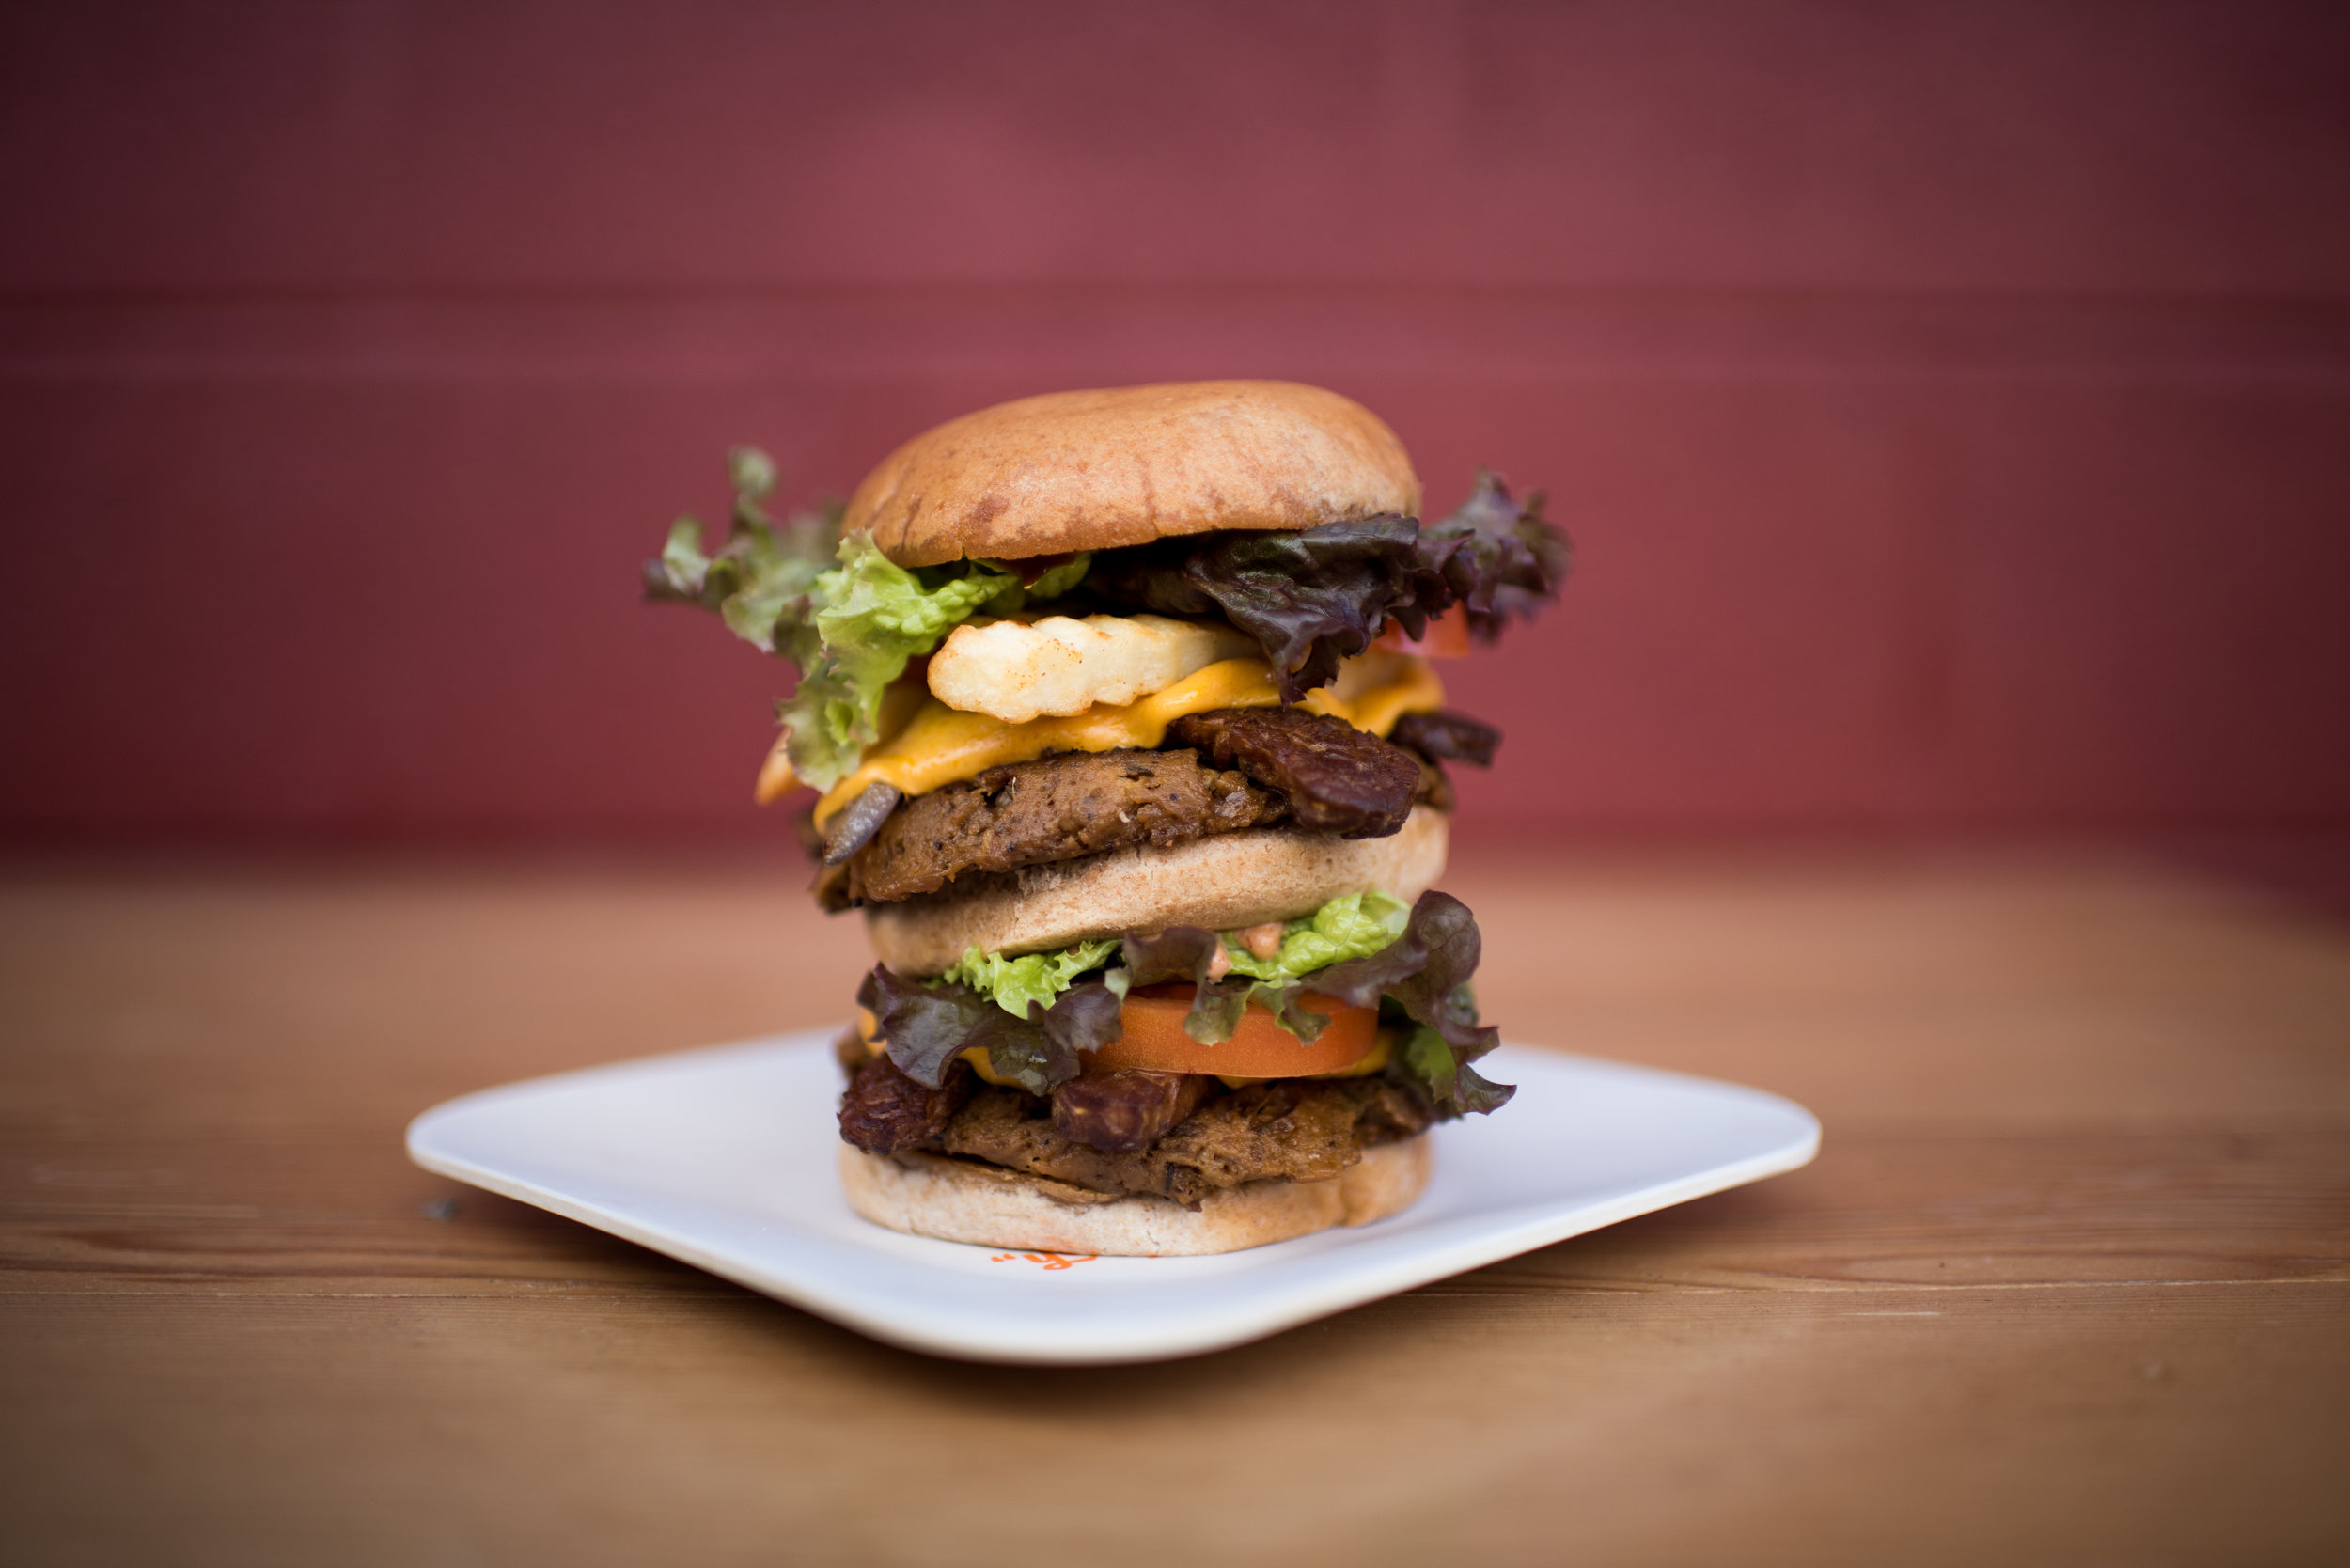 Next Level Burger opened in 2014 flaunting a completely plant-based menu of burger joint classics, like the Animal Burger, pictured here. Now on its way to national expansion, the company joins a growing number of meat-free burger ventures working to change the way Americans eat. Photo from  Next Level Burger